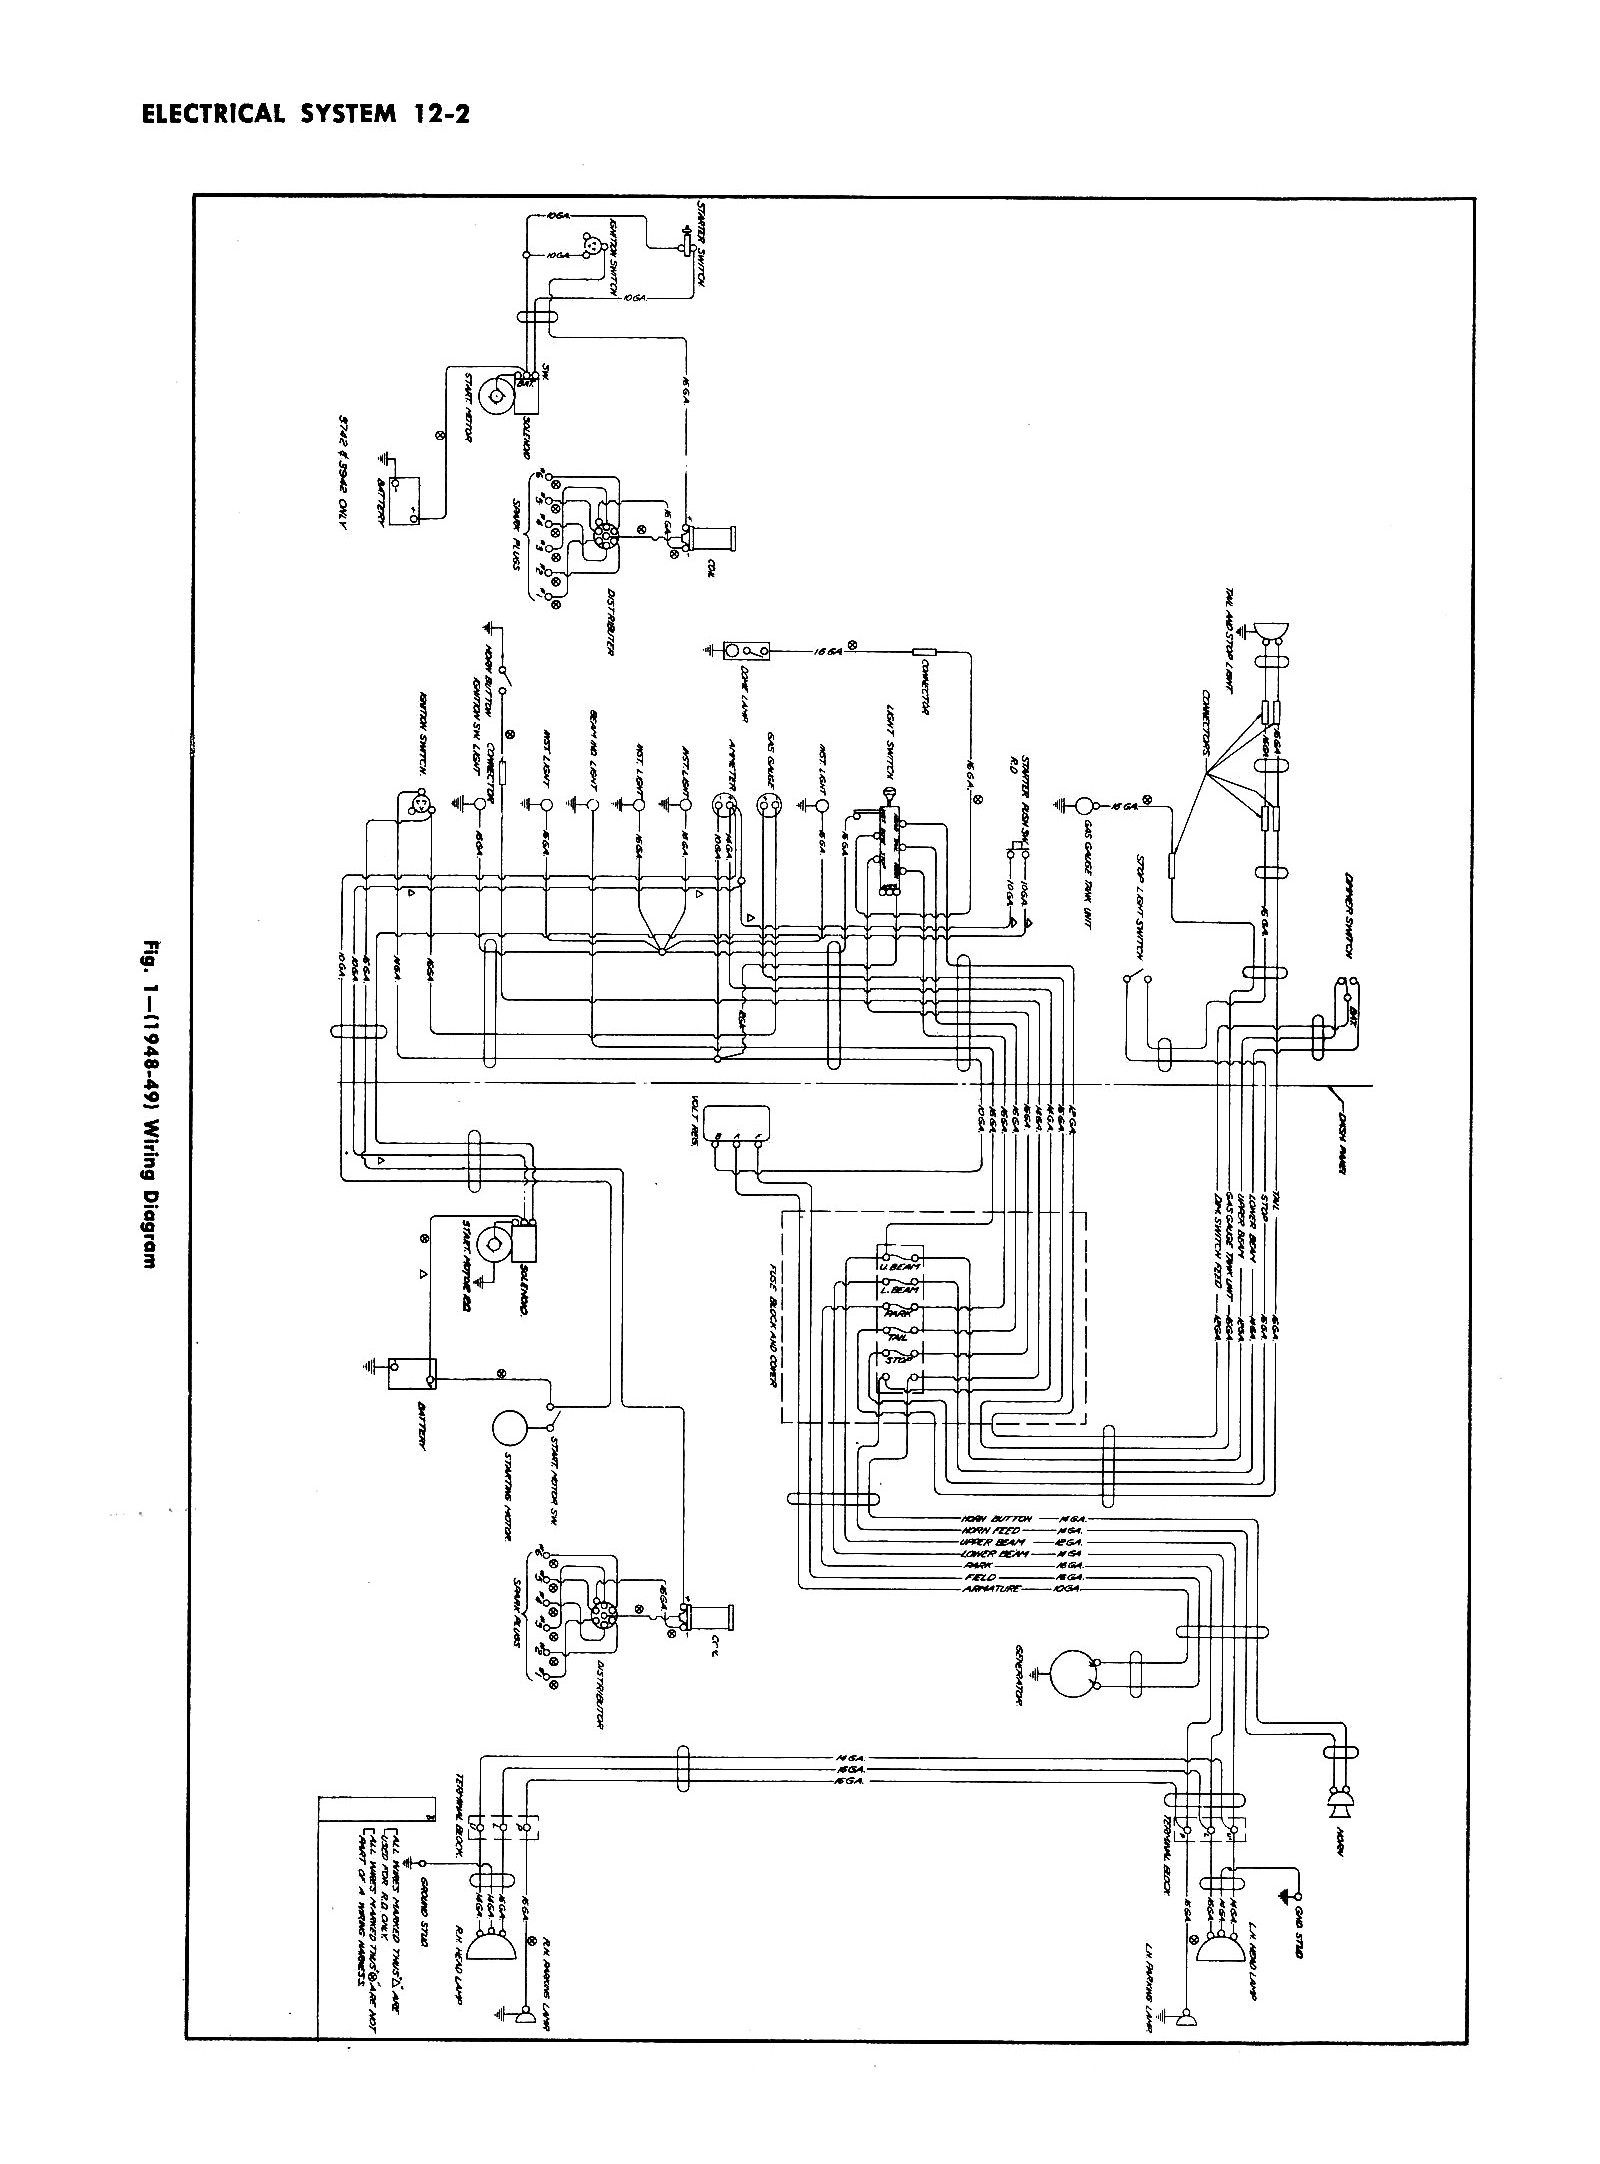 1949 Chevy Deluxe Wiring Harness | Wiring Schematic Diagram on painless wiring systems, painless wiring tool, painless wiring for 68 camaro, painless wiring 81, painless wiring kits, painless 5 3 harness,